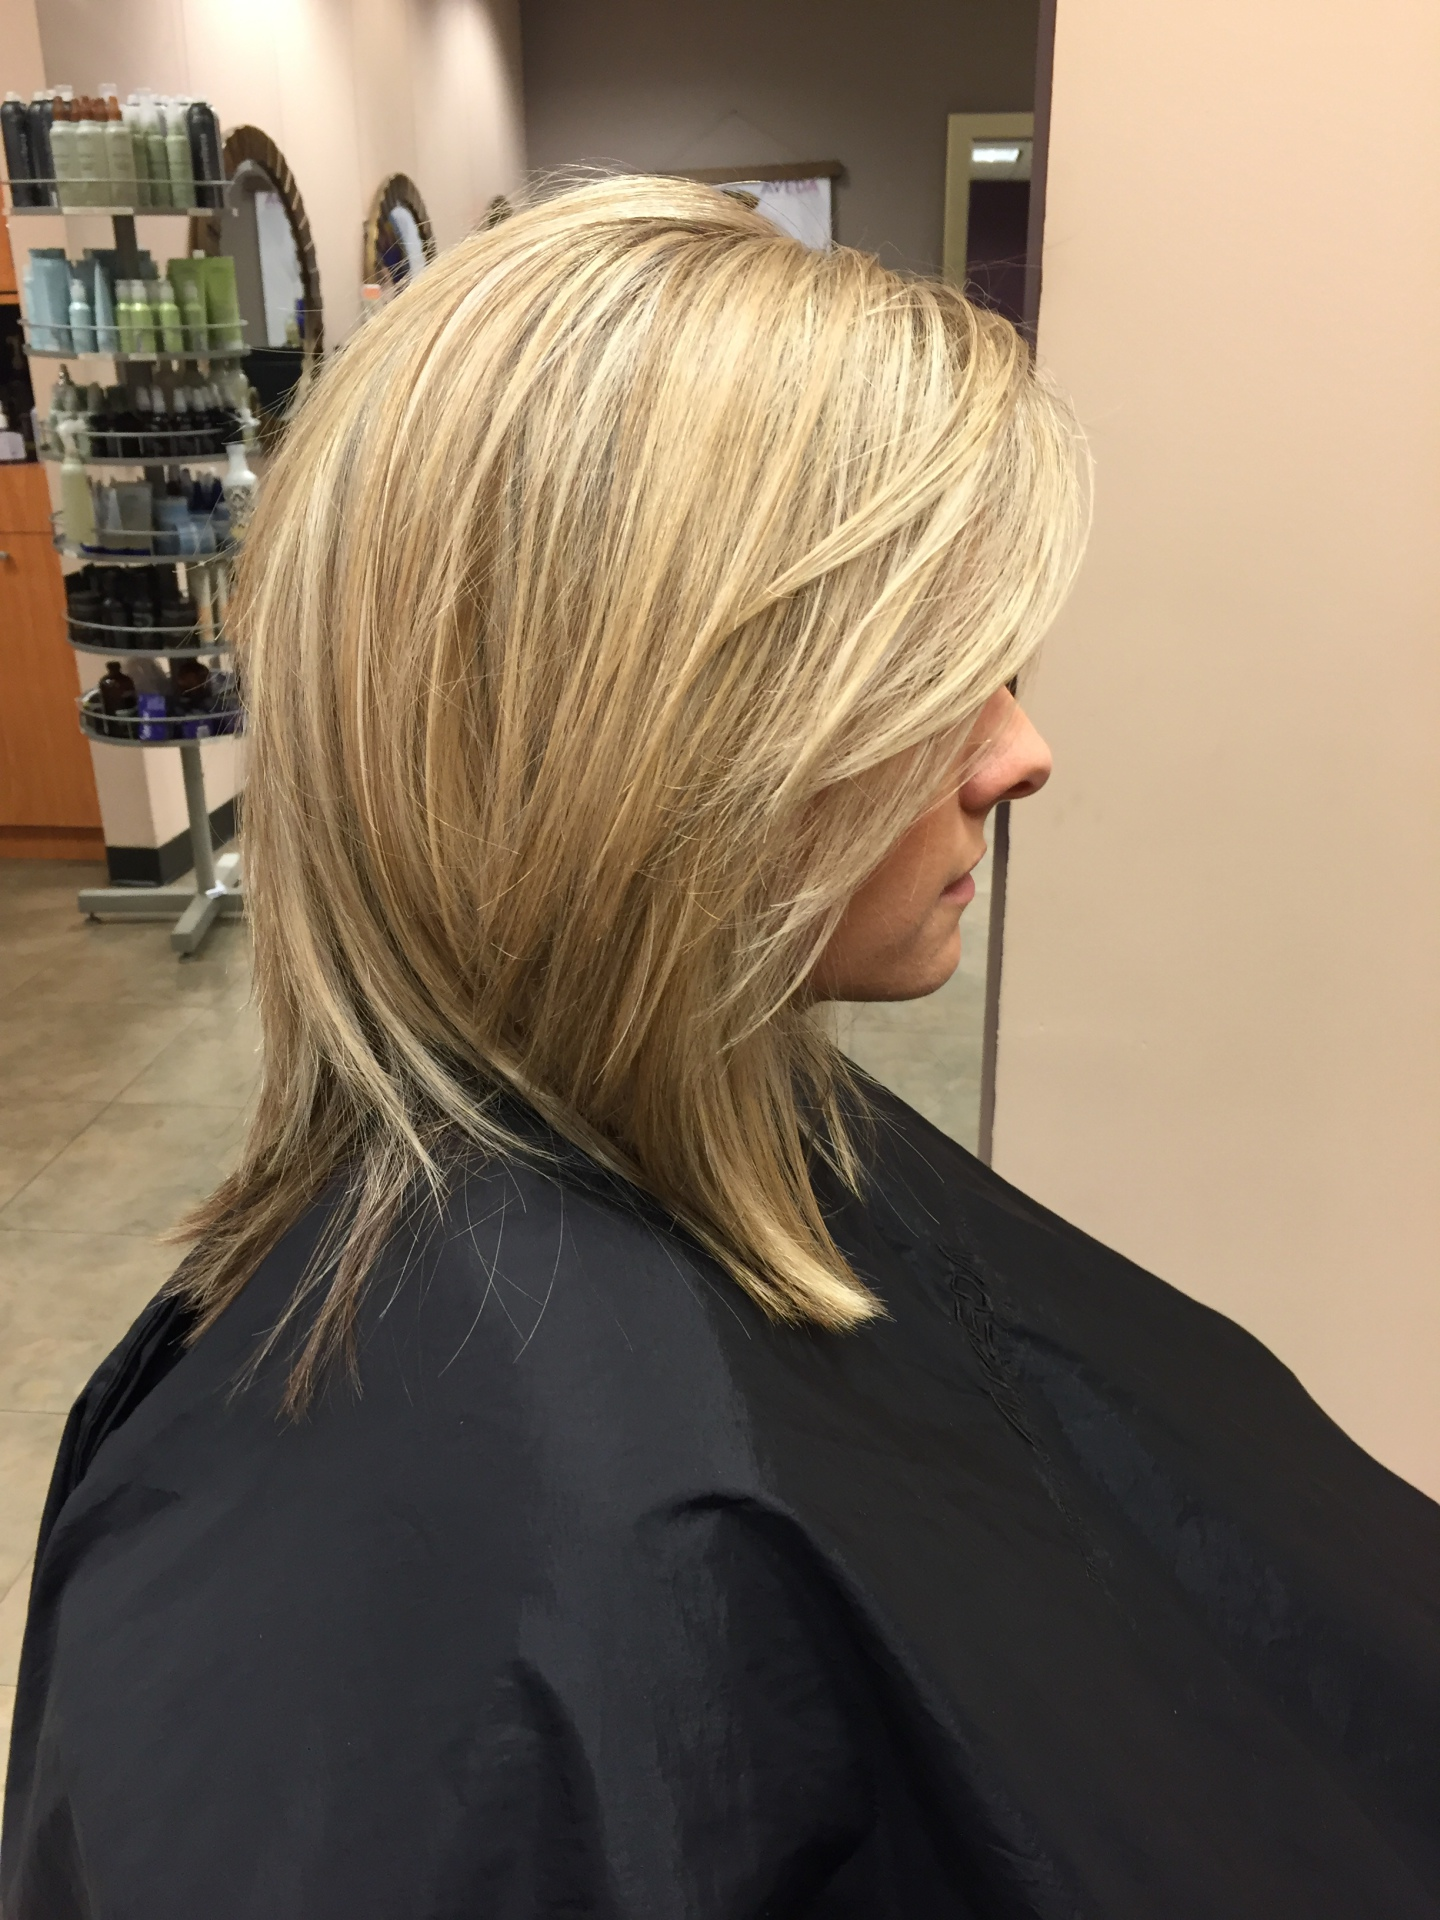 Top 10 hair salons Asheville, NC